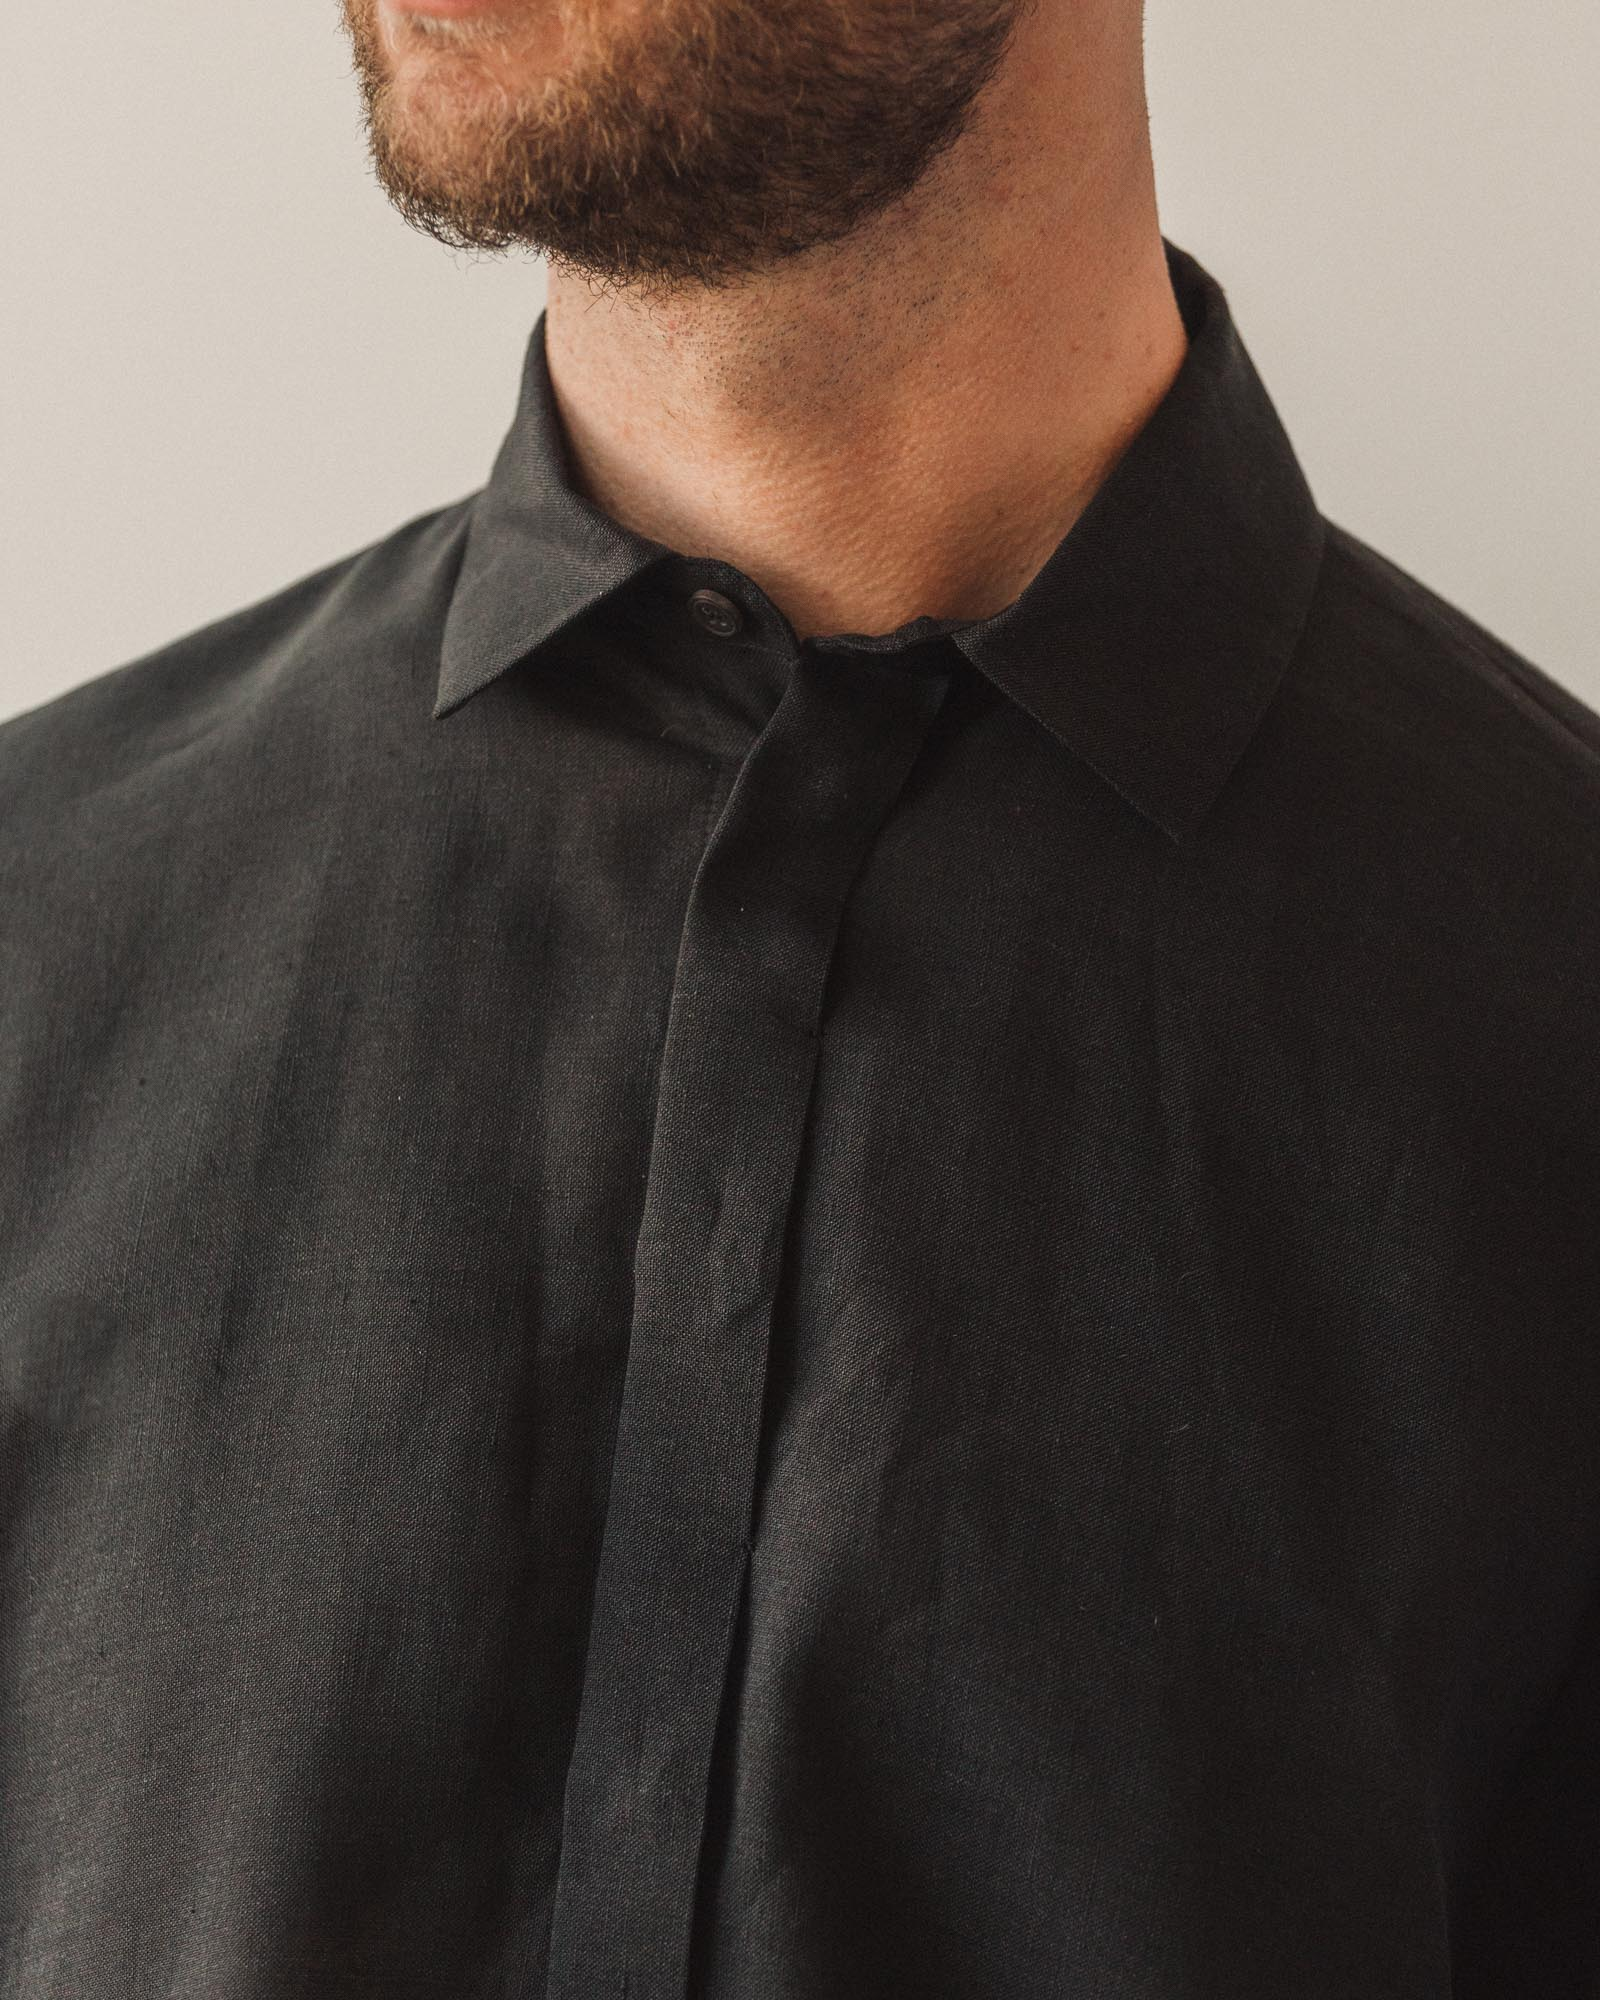 Jan-Jan Van Essche Shirt #76, Black Mesh